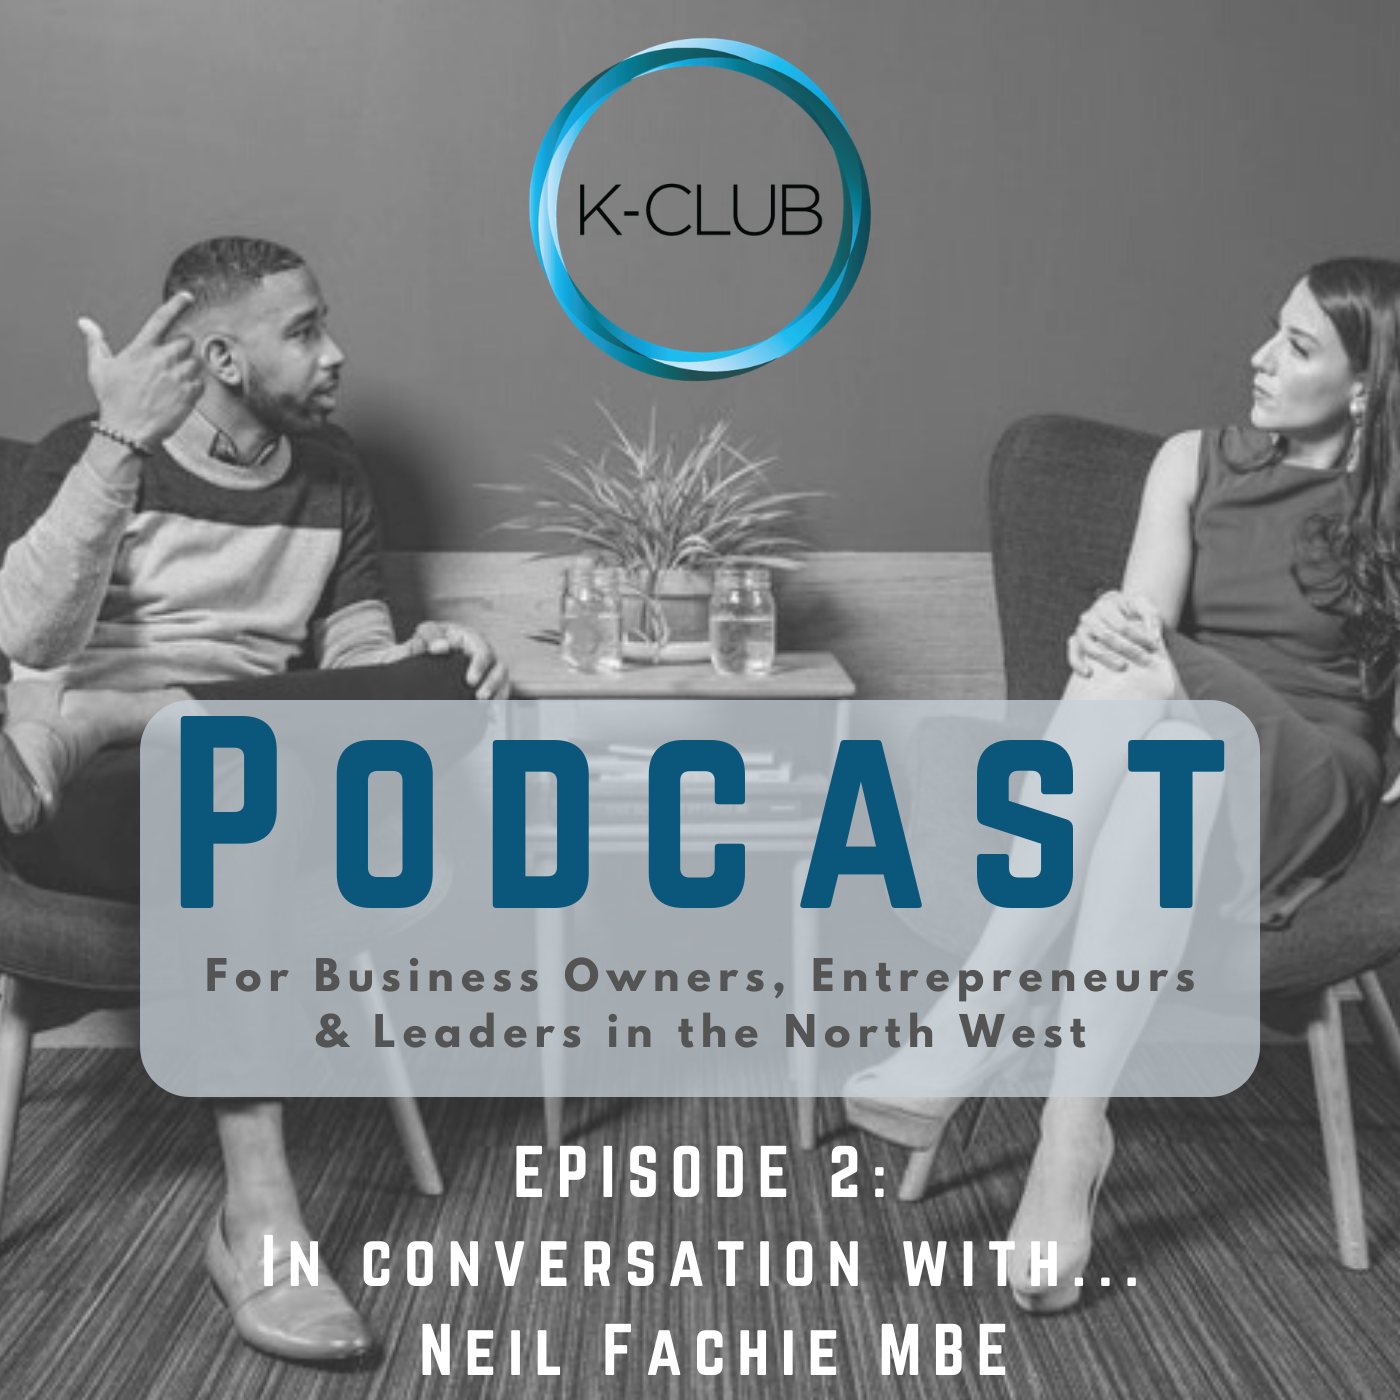 K-Club Podcast #2 - Neil Fachie mindset